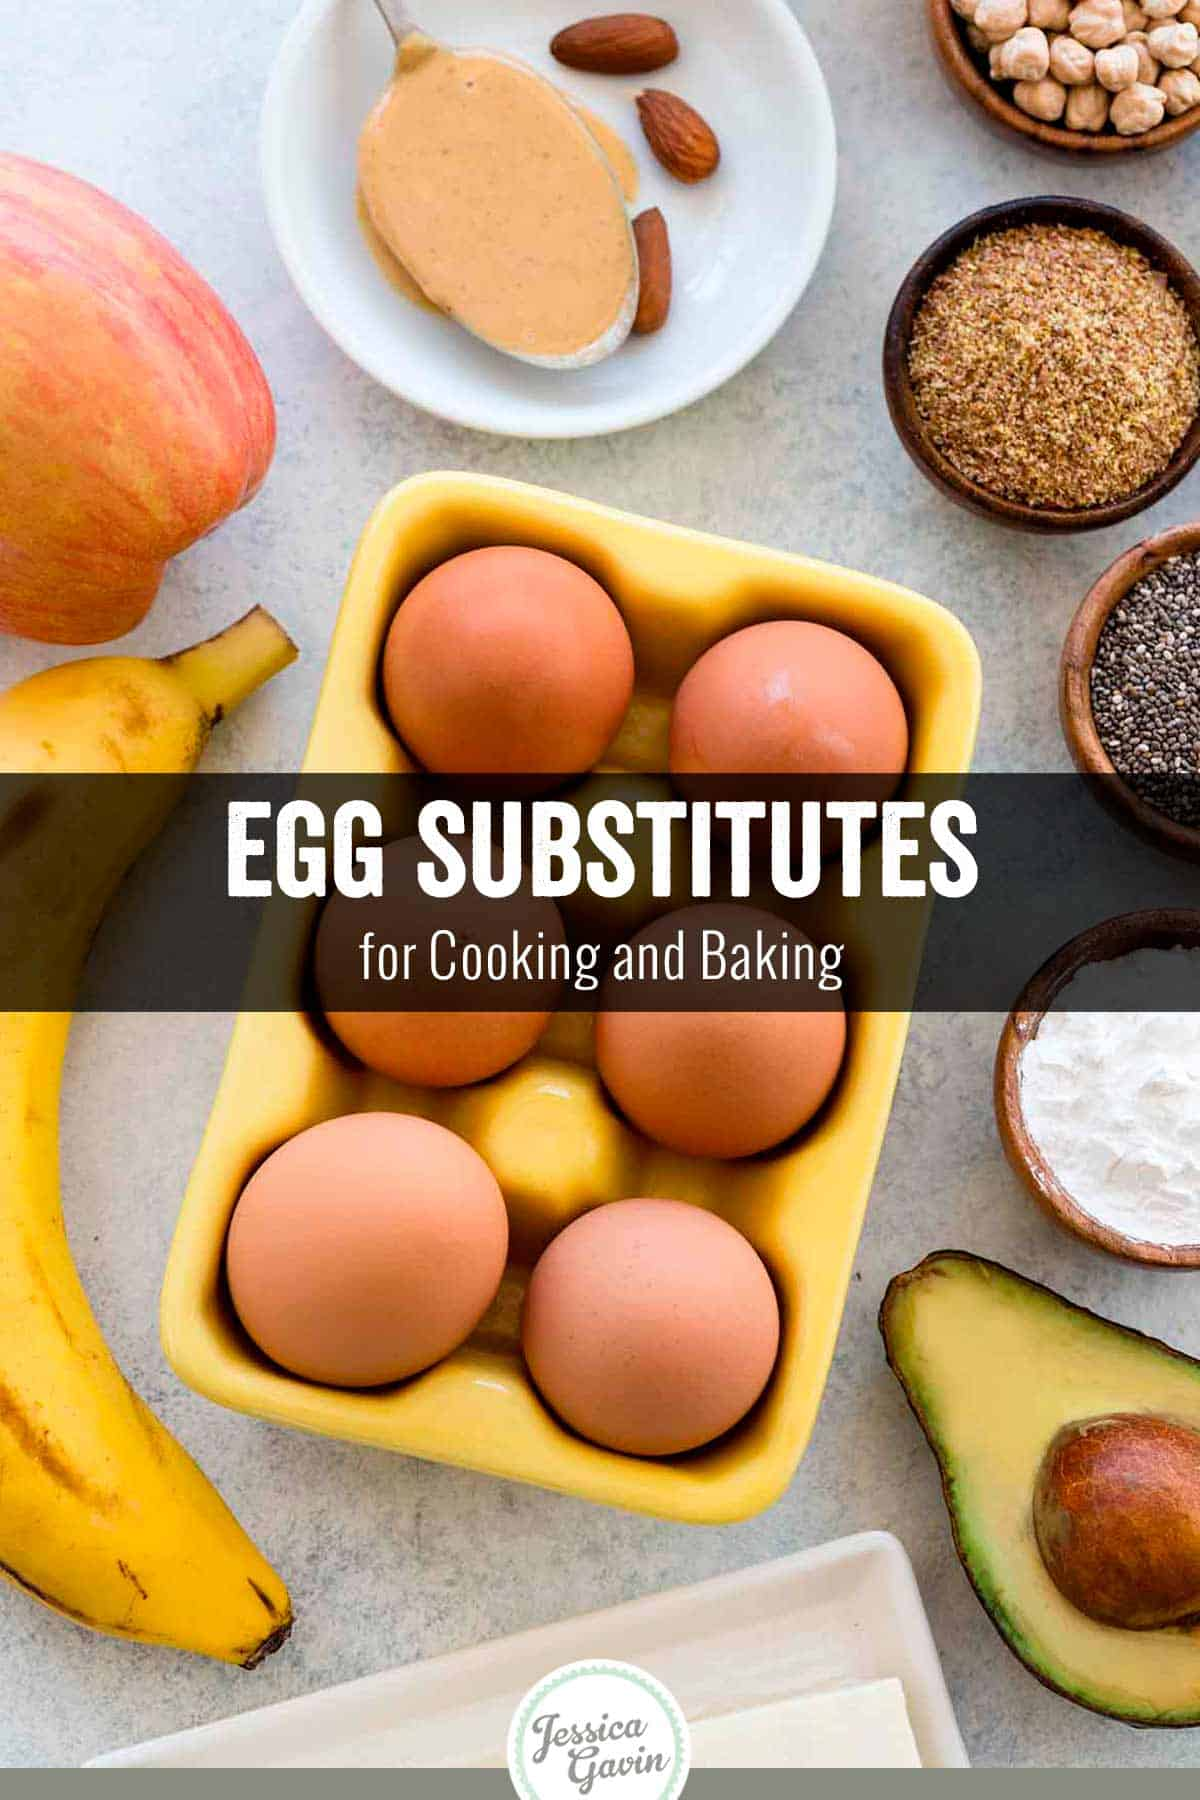 Egg Substitutes Market 2018 Global Industry Size, Growth, Manufacturers, Segments and 2025 Forecast Report